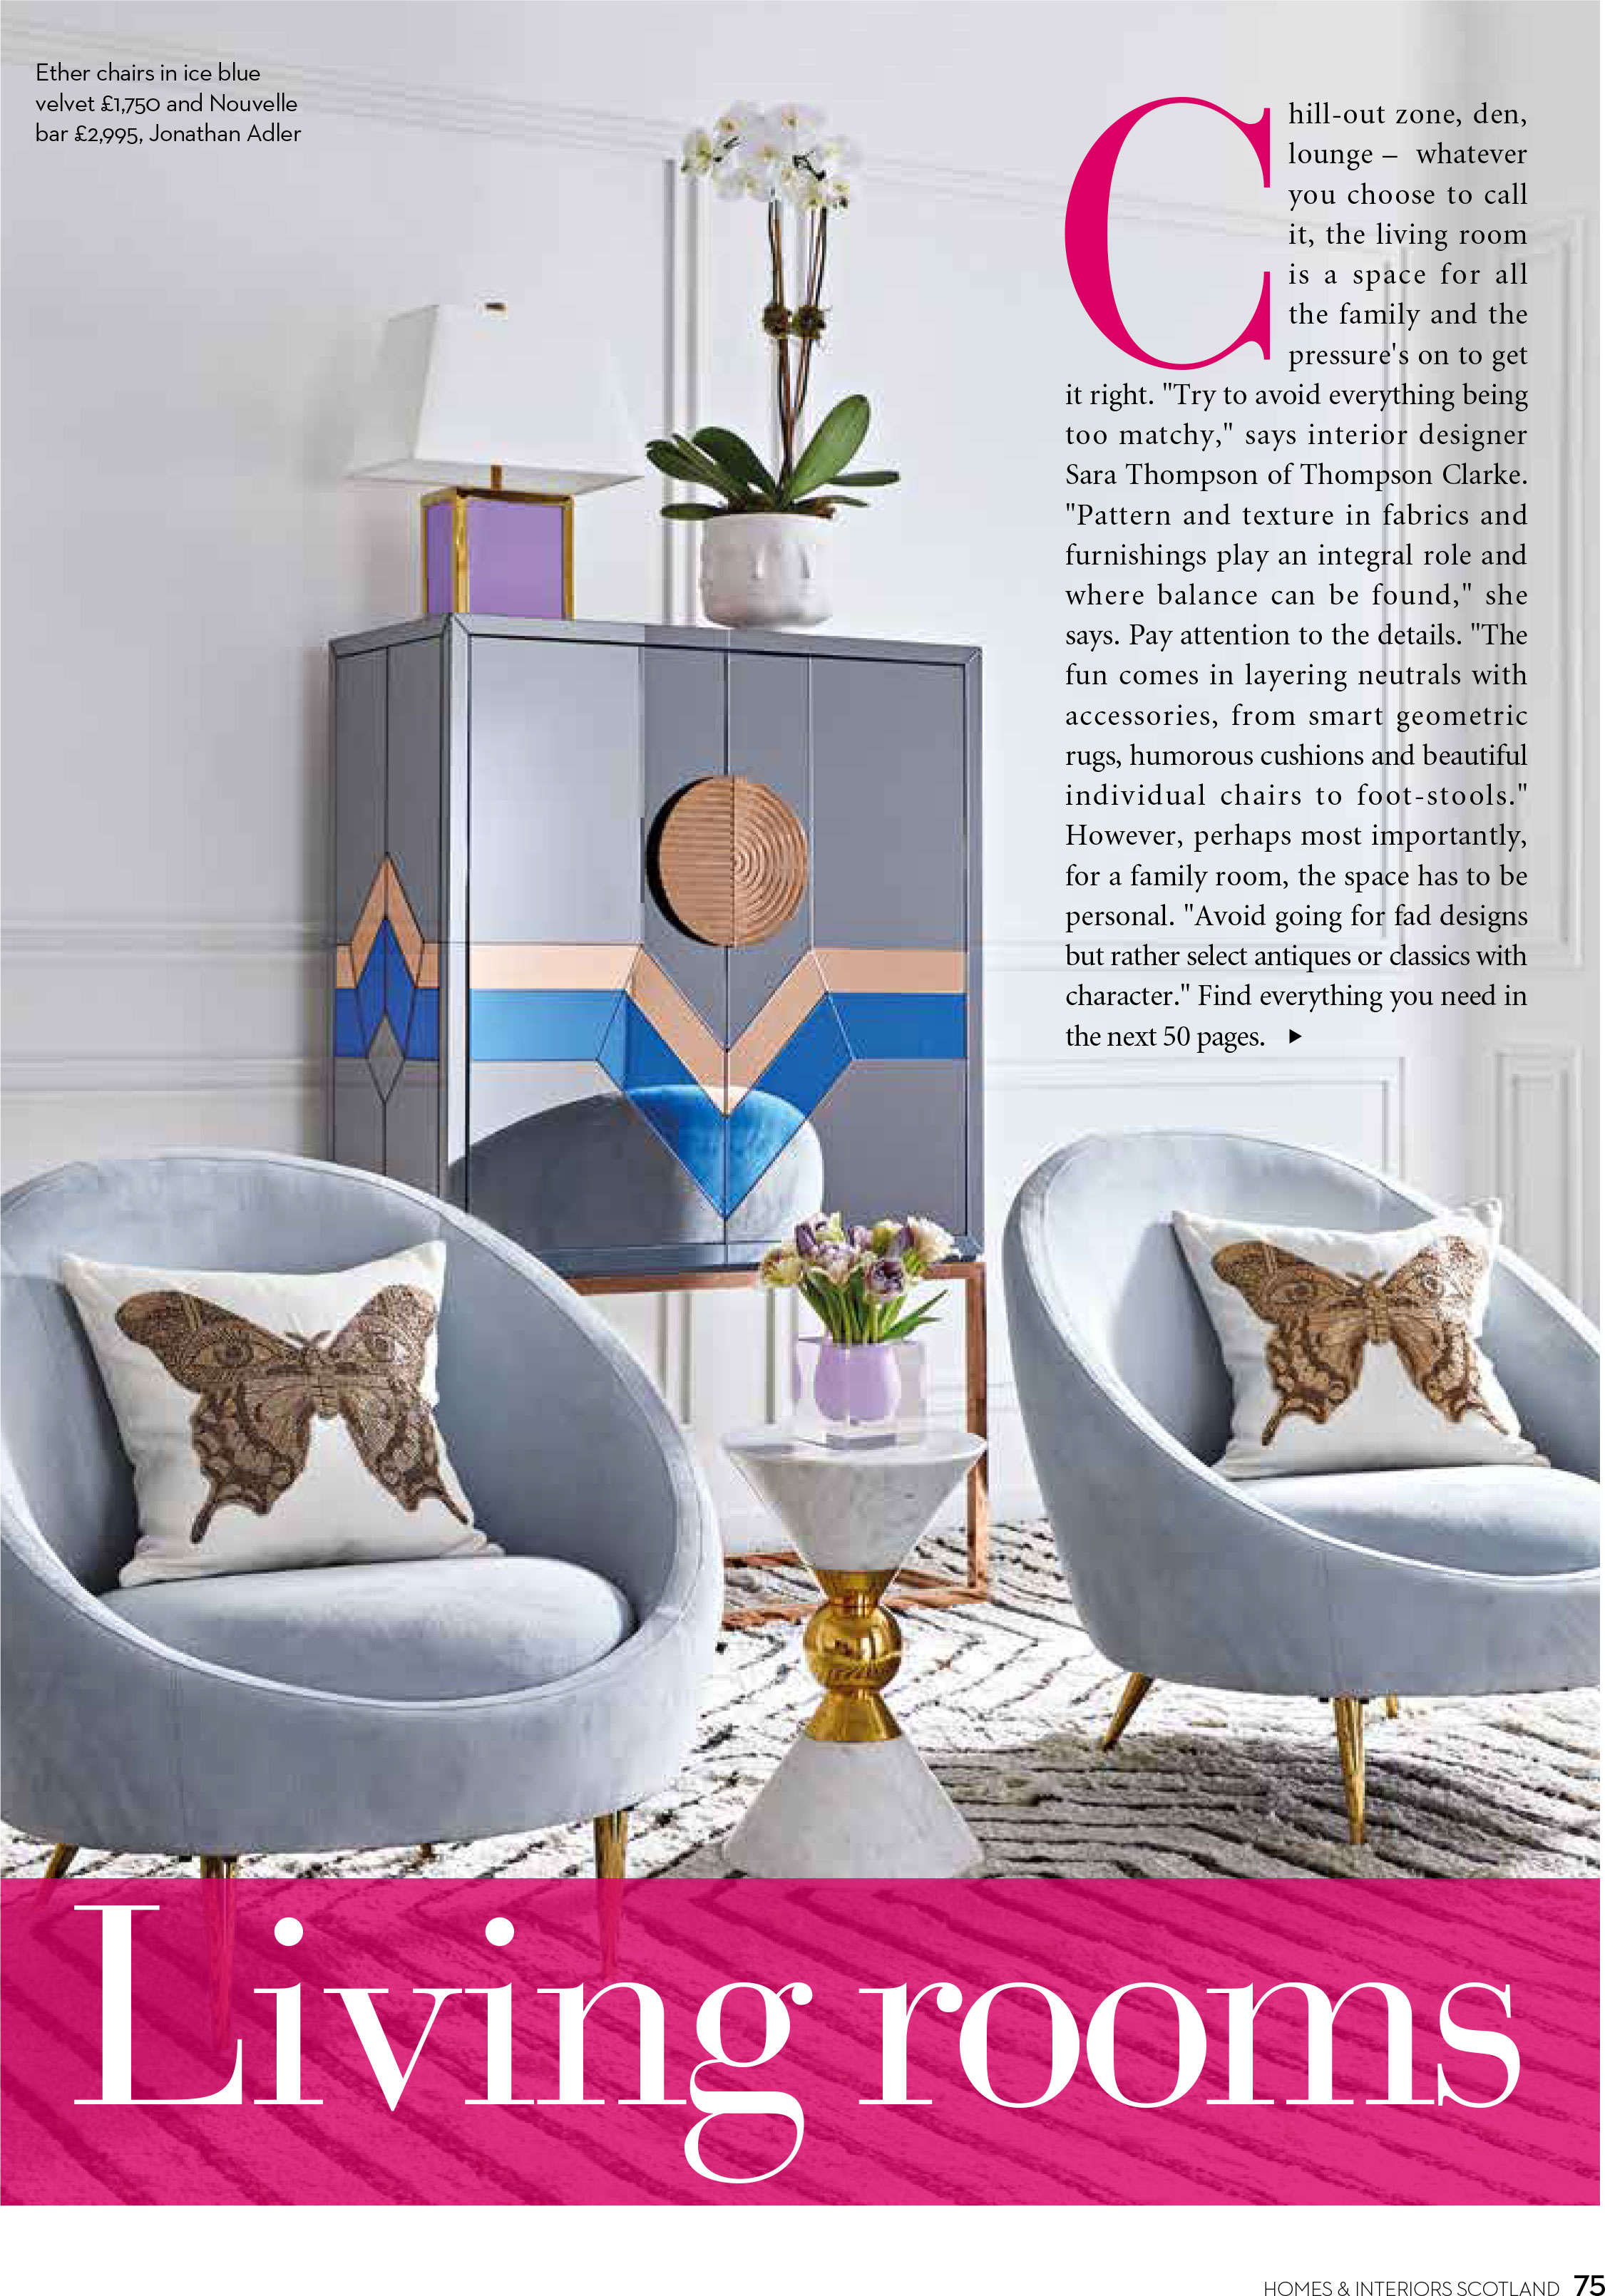 scotland s homes and interiors september october 2017 thompson